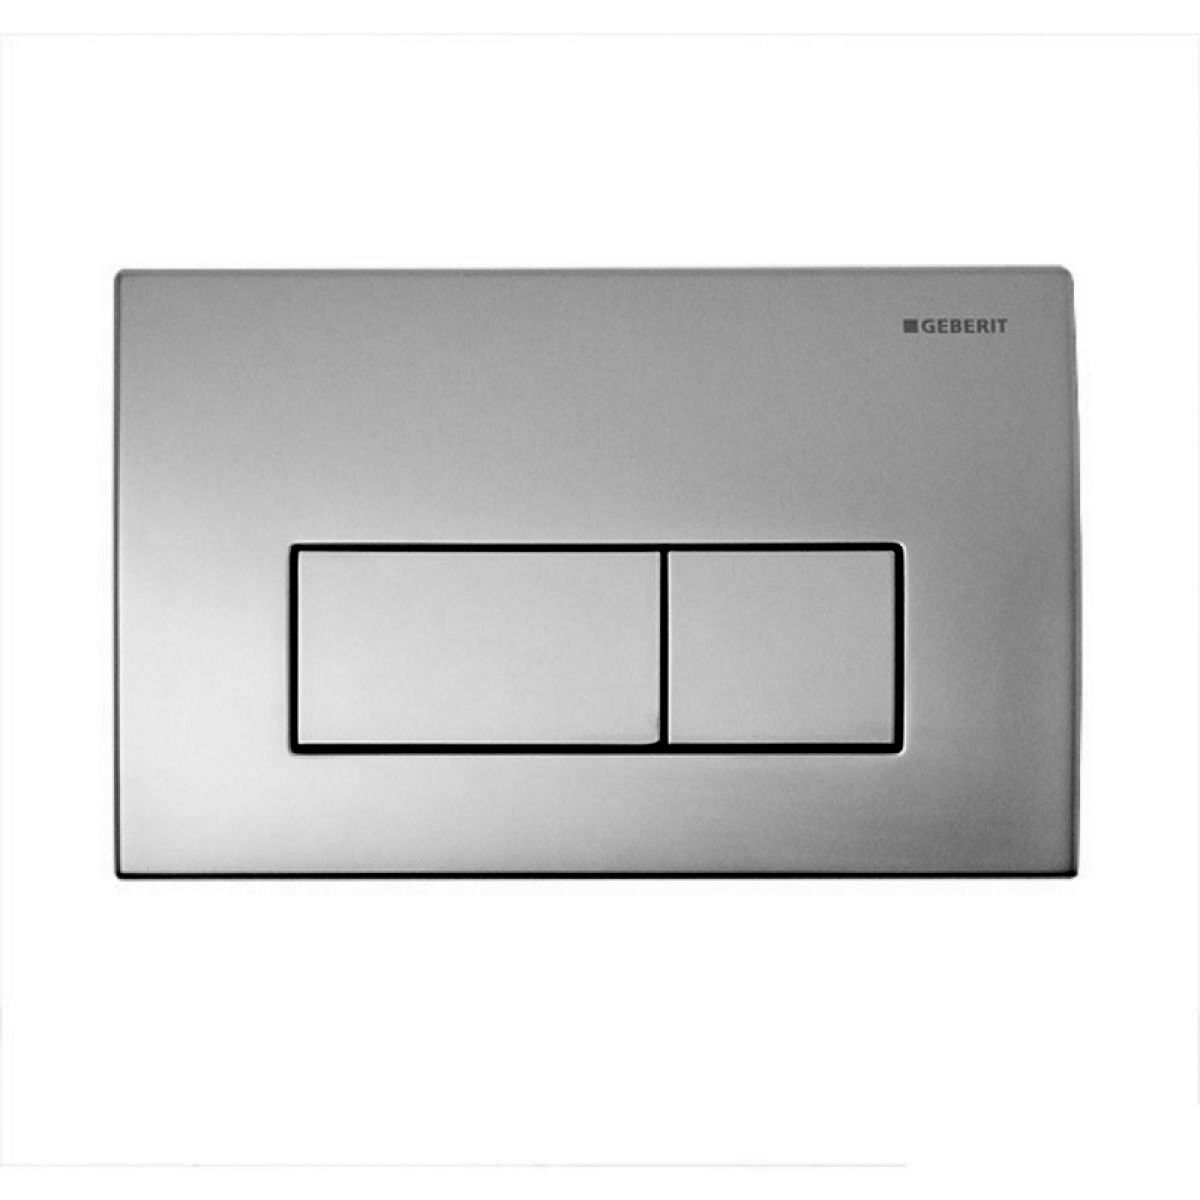 Geberit kappa 15cm dual flush concealed cistern uk bathrooms for Geberit technical support